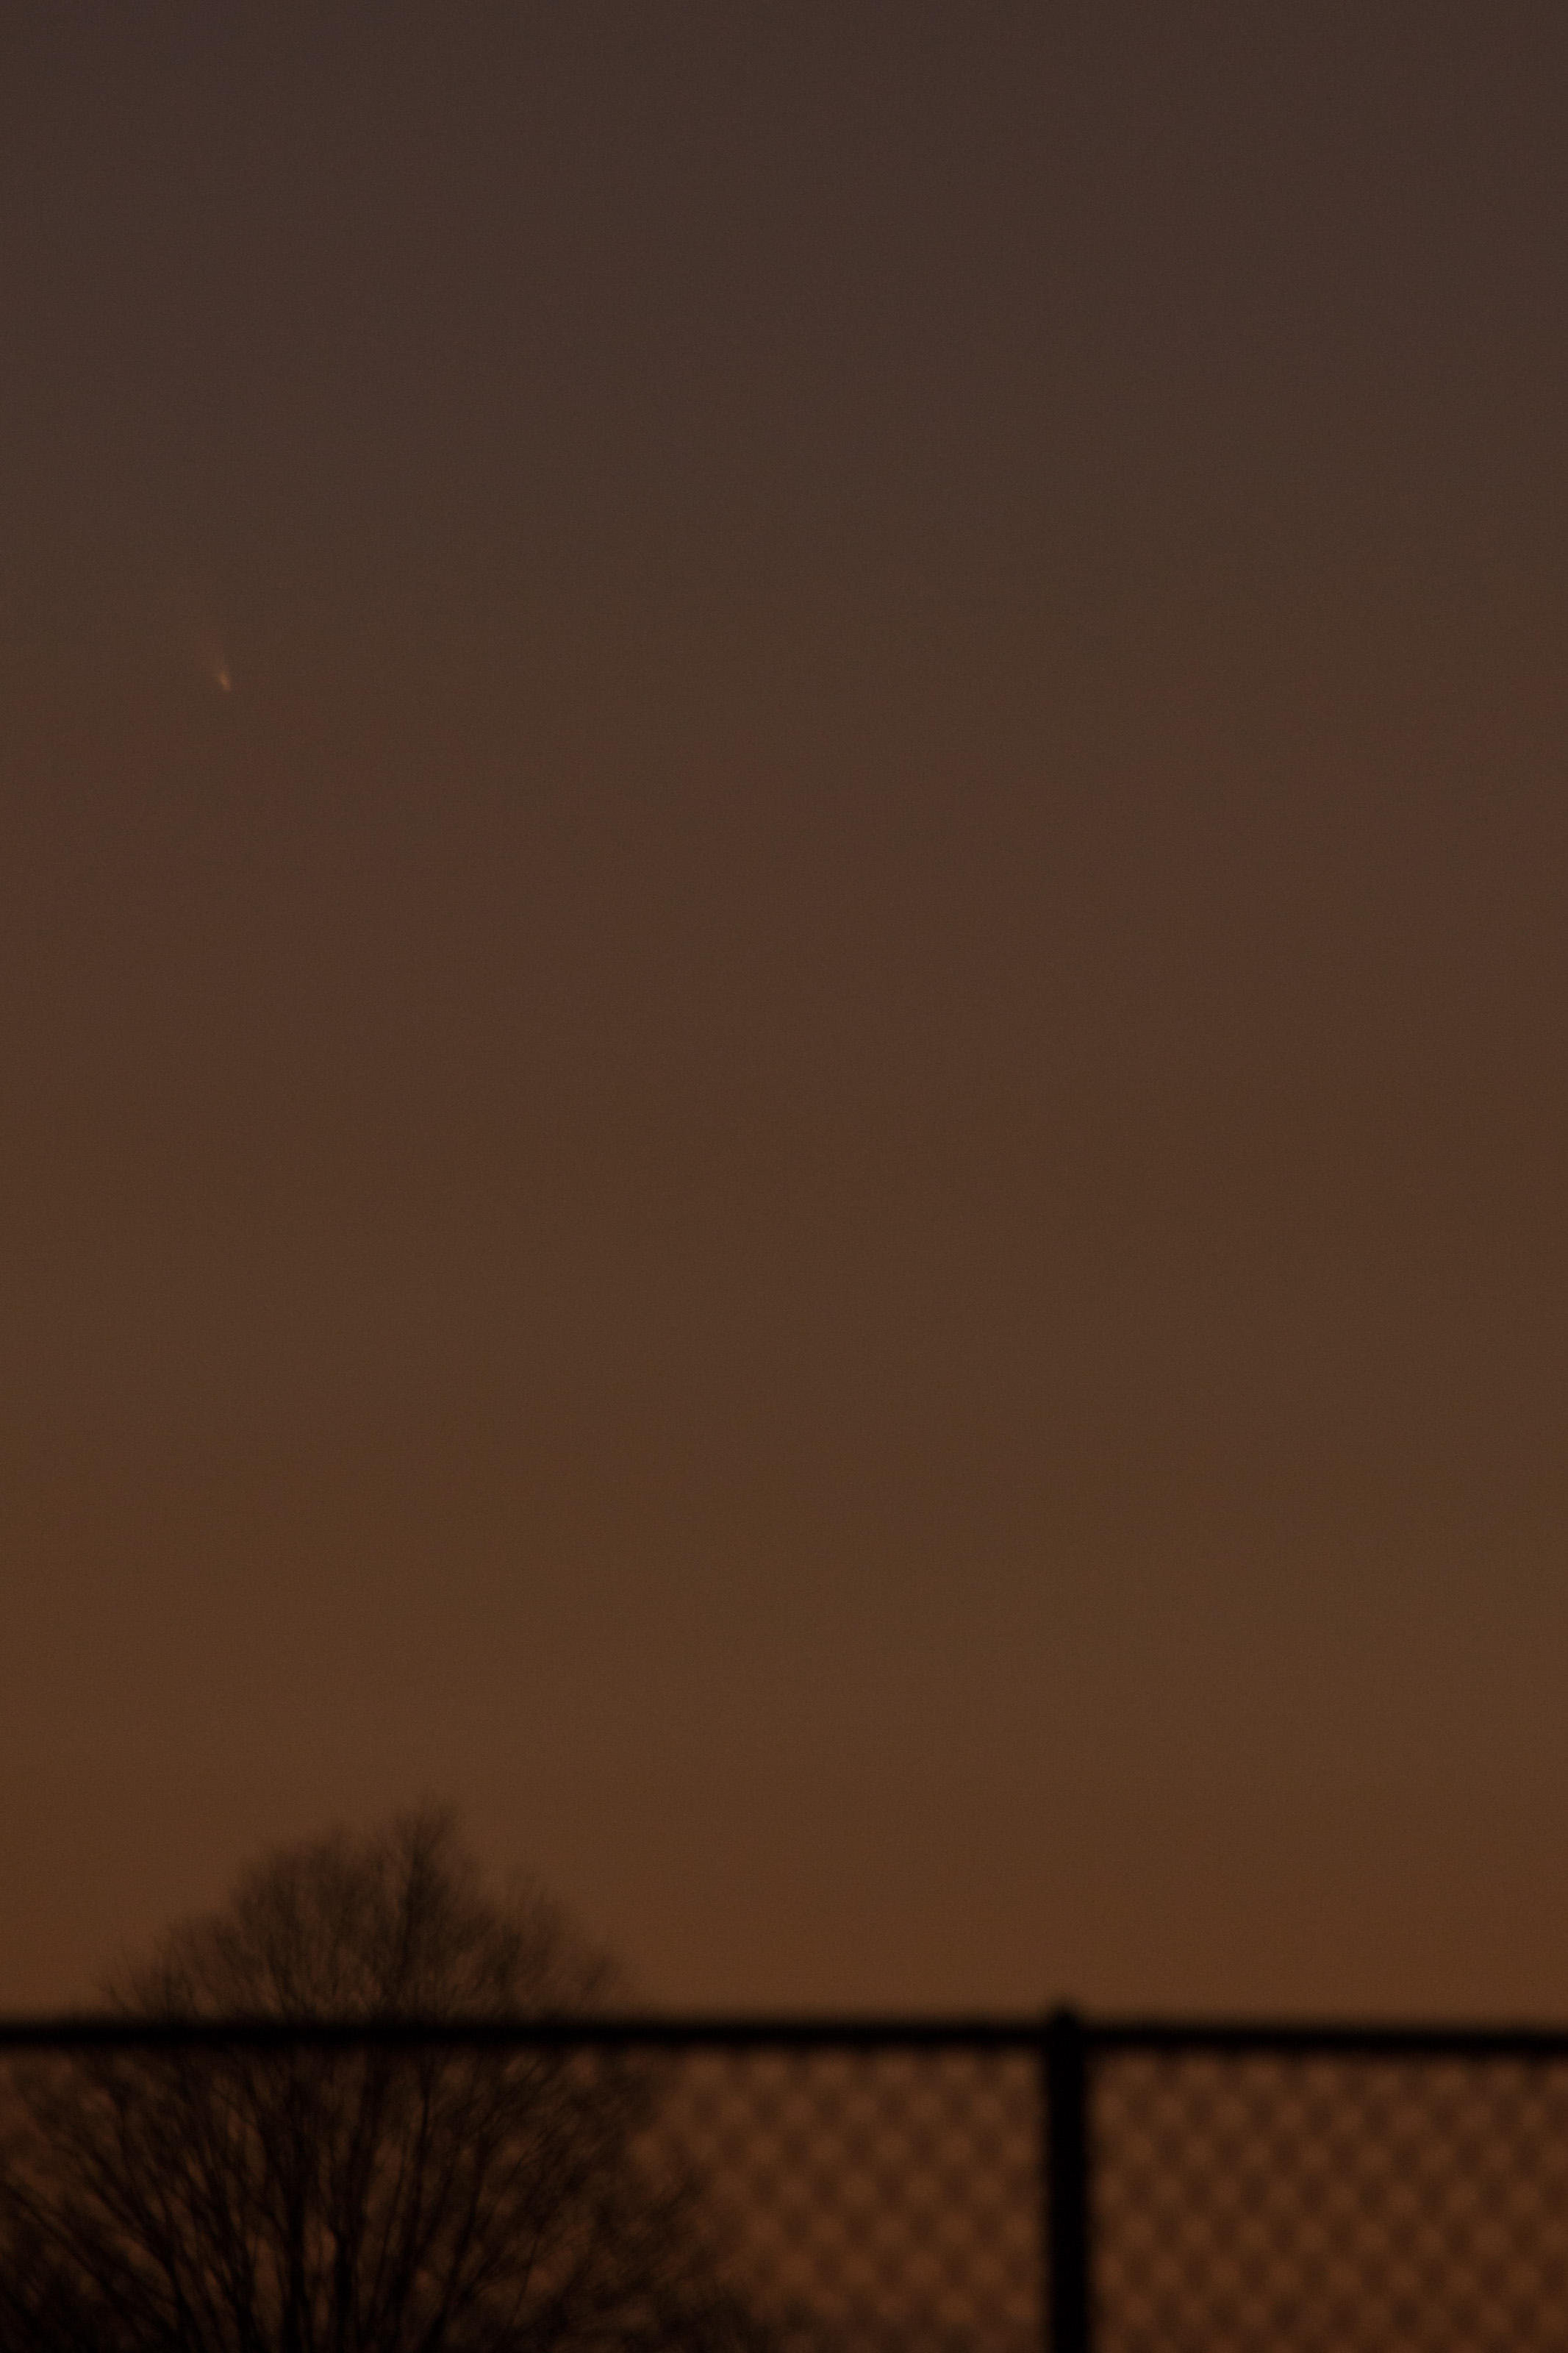 Comet PanSTARRS as seen on March 13th from Garden City, NY at around 7:45 PM